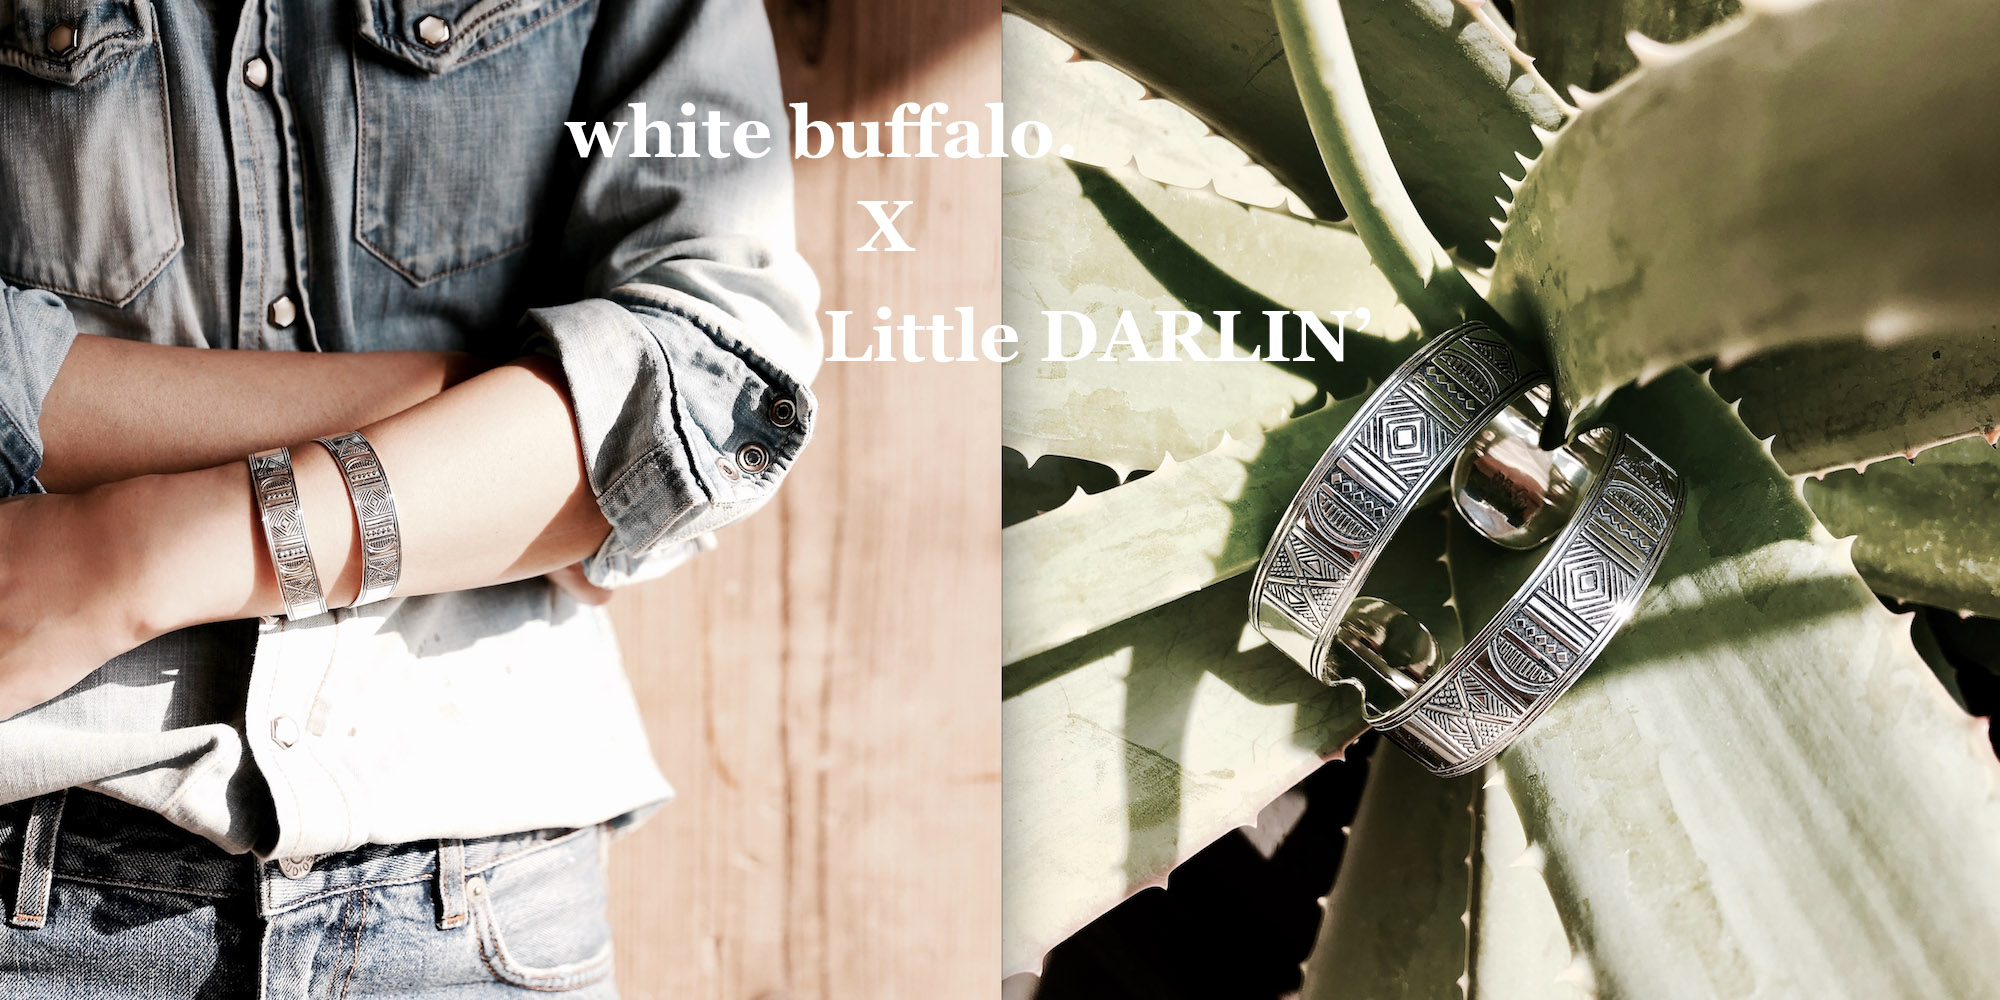 White x litttedarlin.jpg イメージ